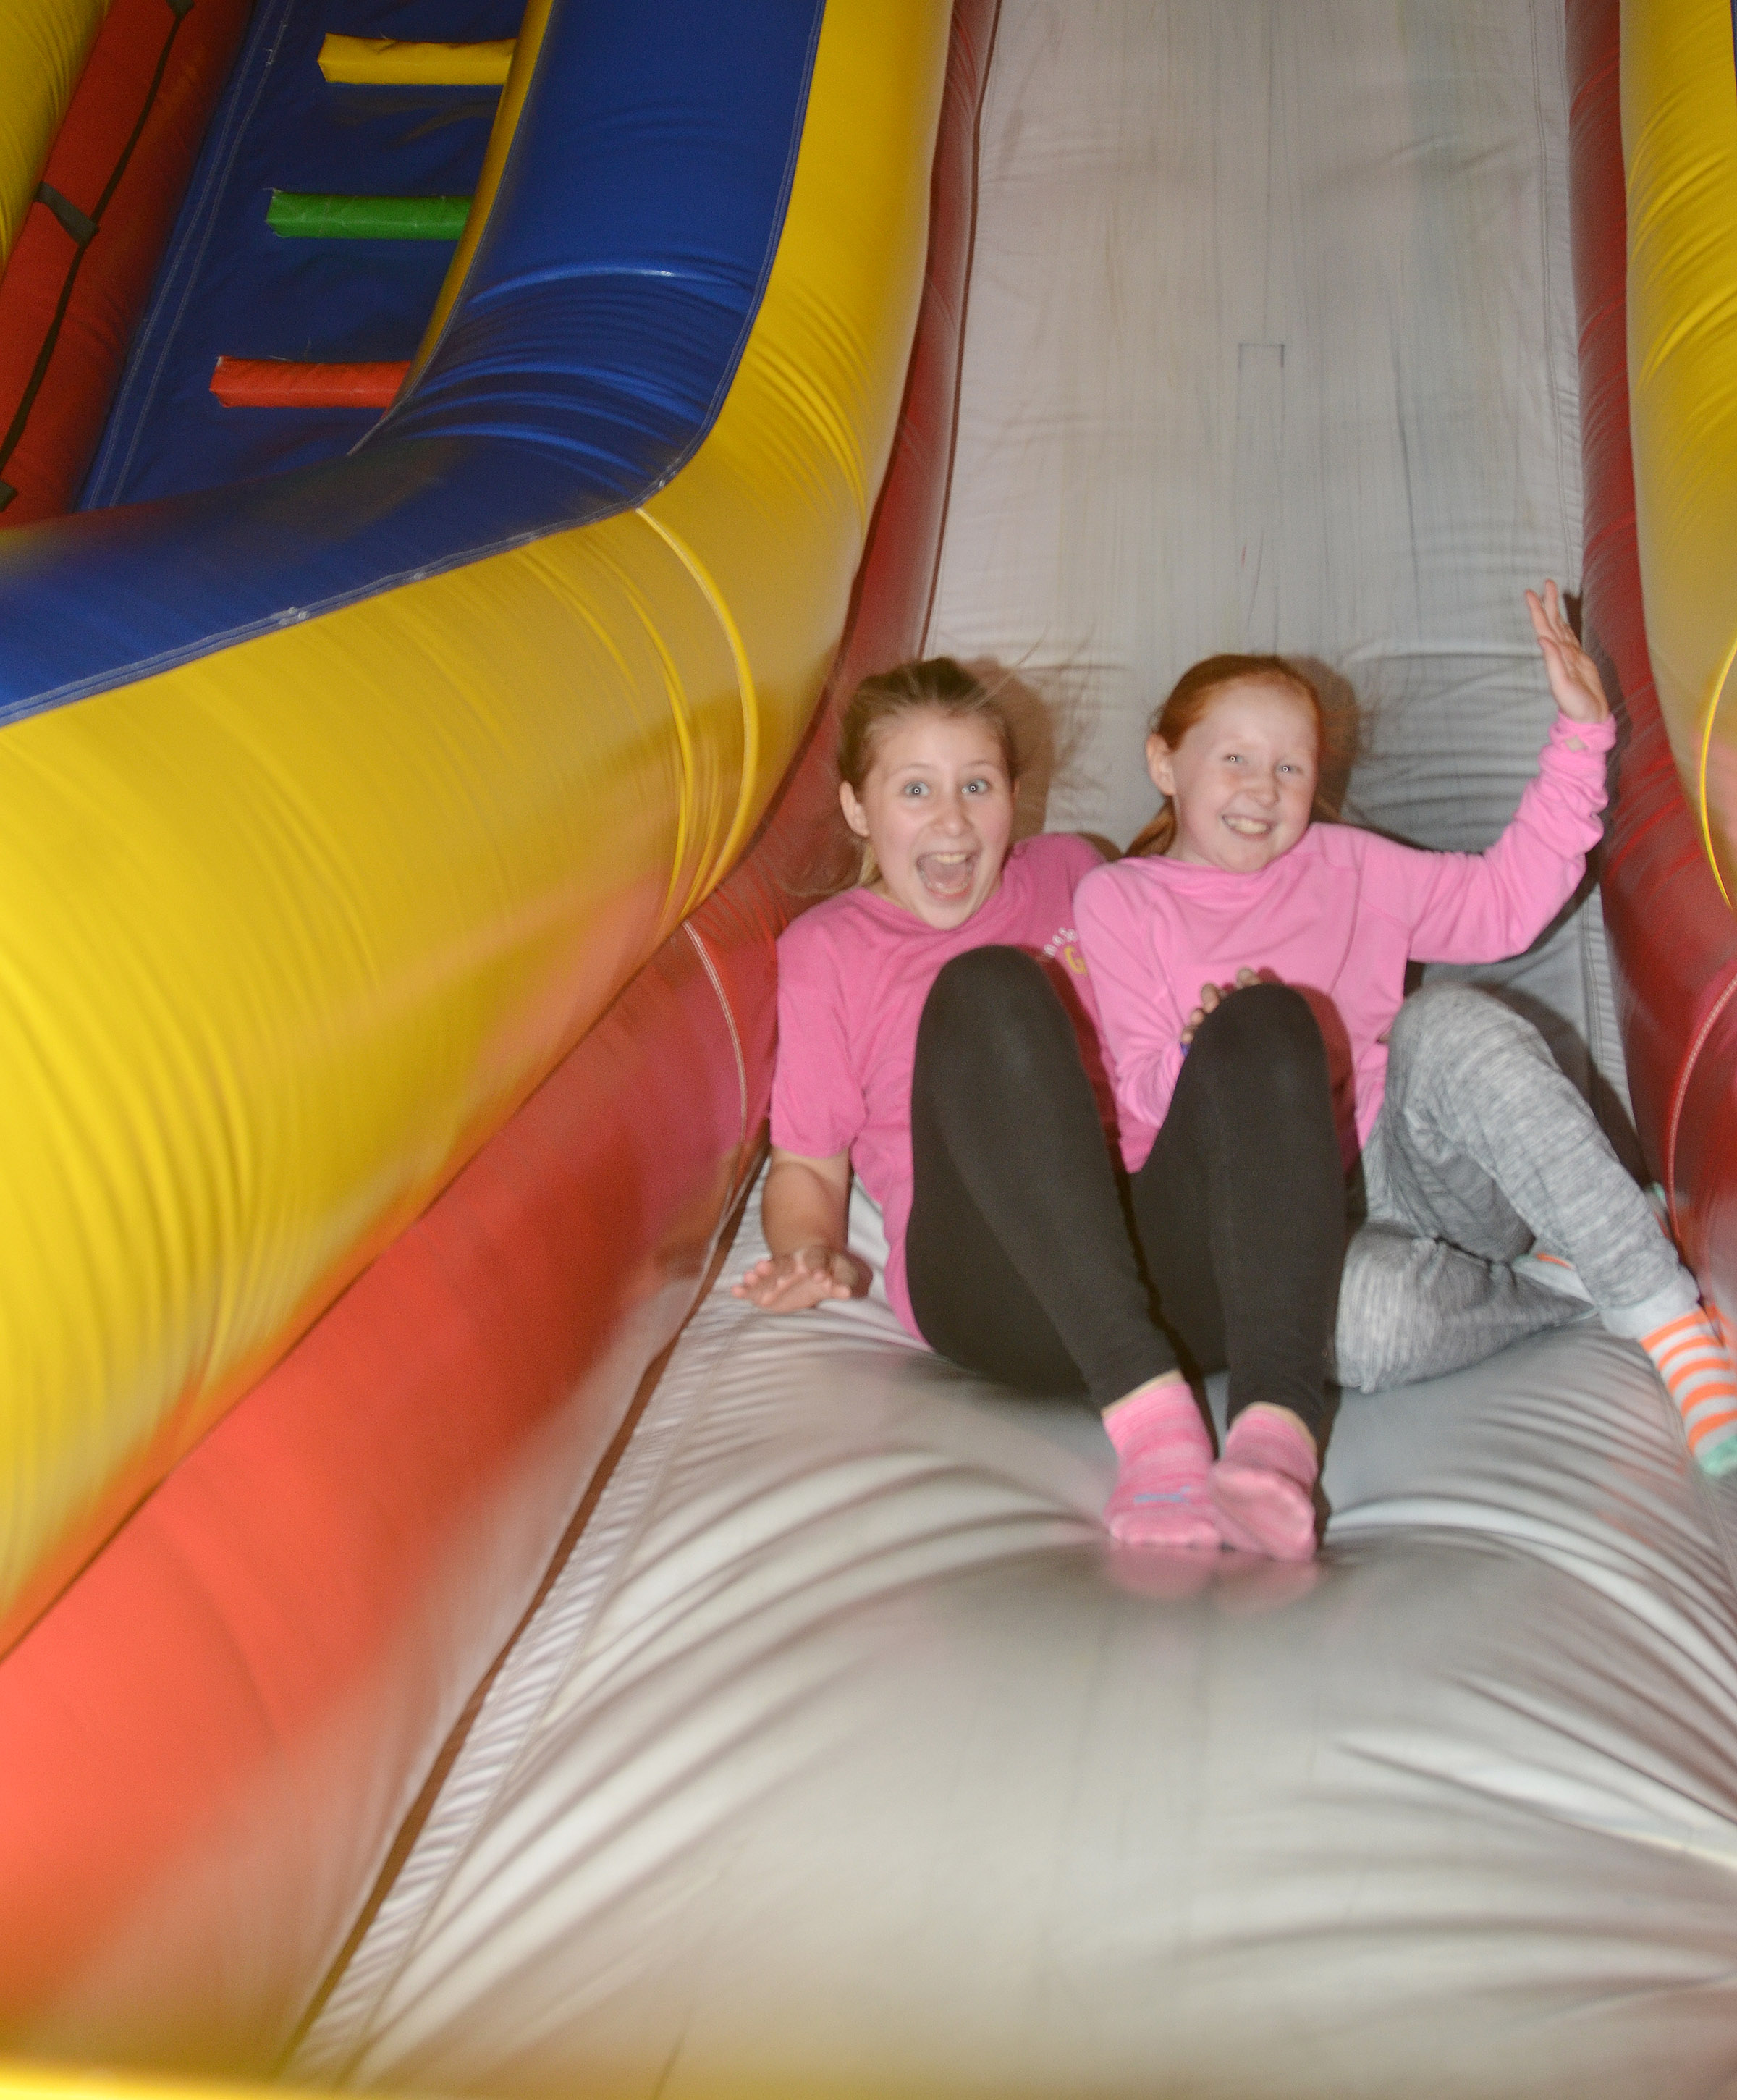 CES fourth-graders Addysen Dotson, at left, and Nora Harris slide down an inflatable.